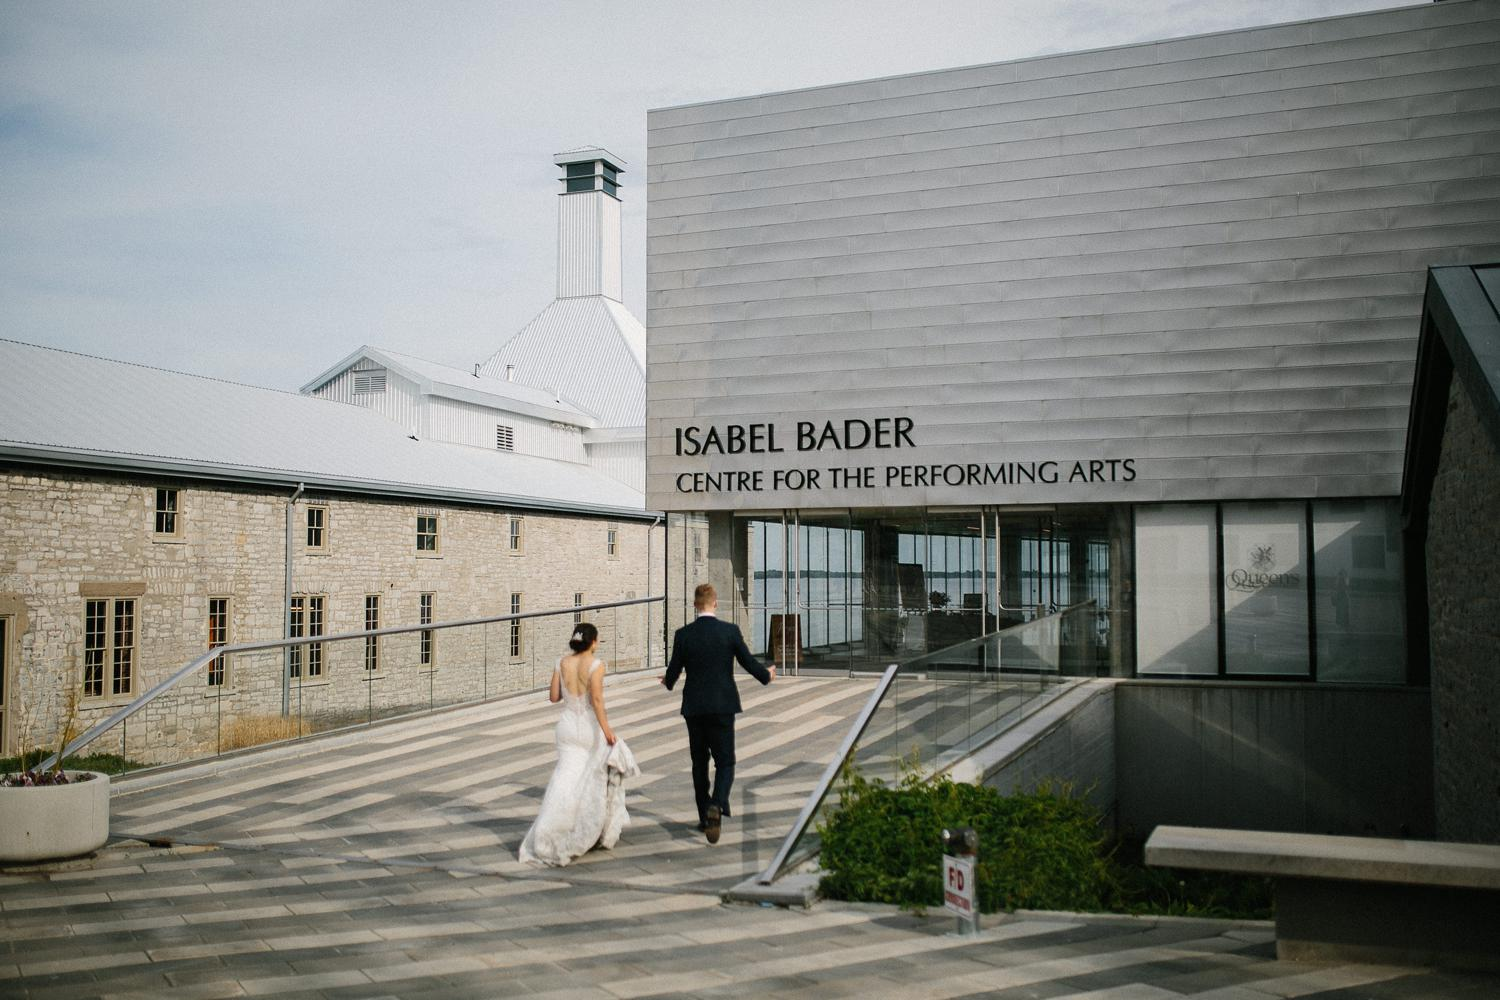 The Isabel Bader Centre for the Performing Arts Kingston Wedding Kerry Ford Photography-193.jpg